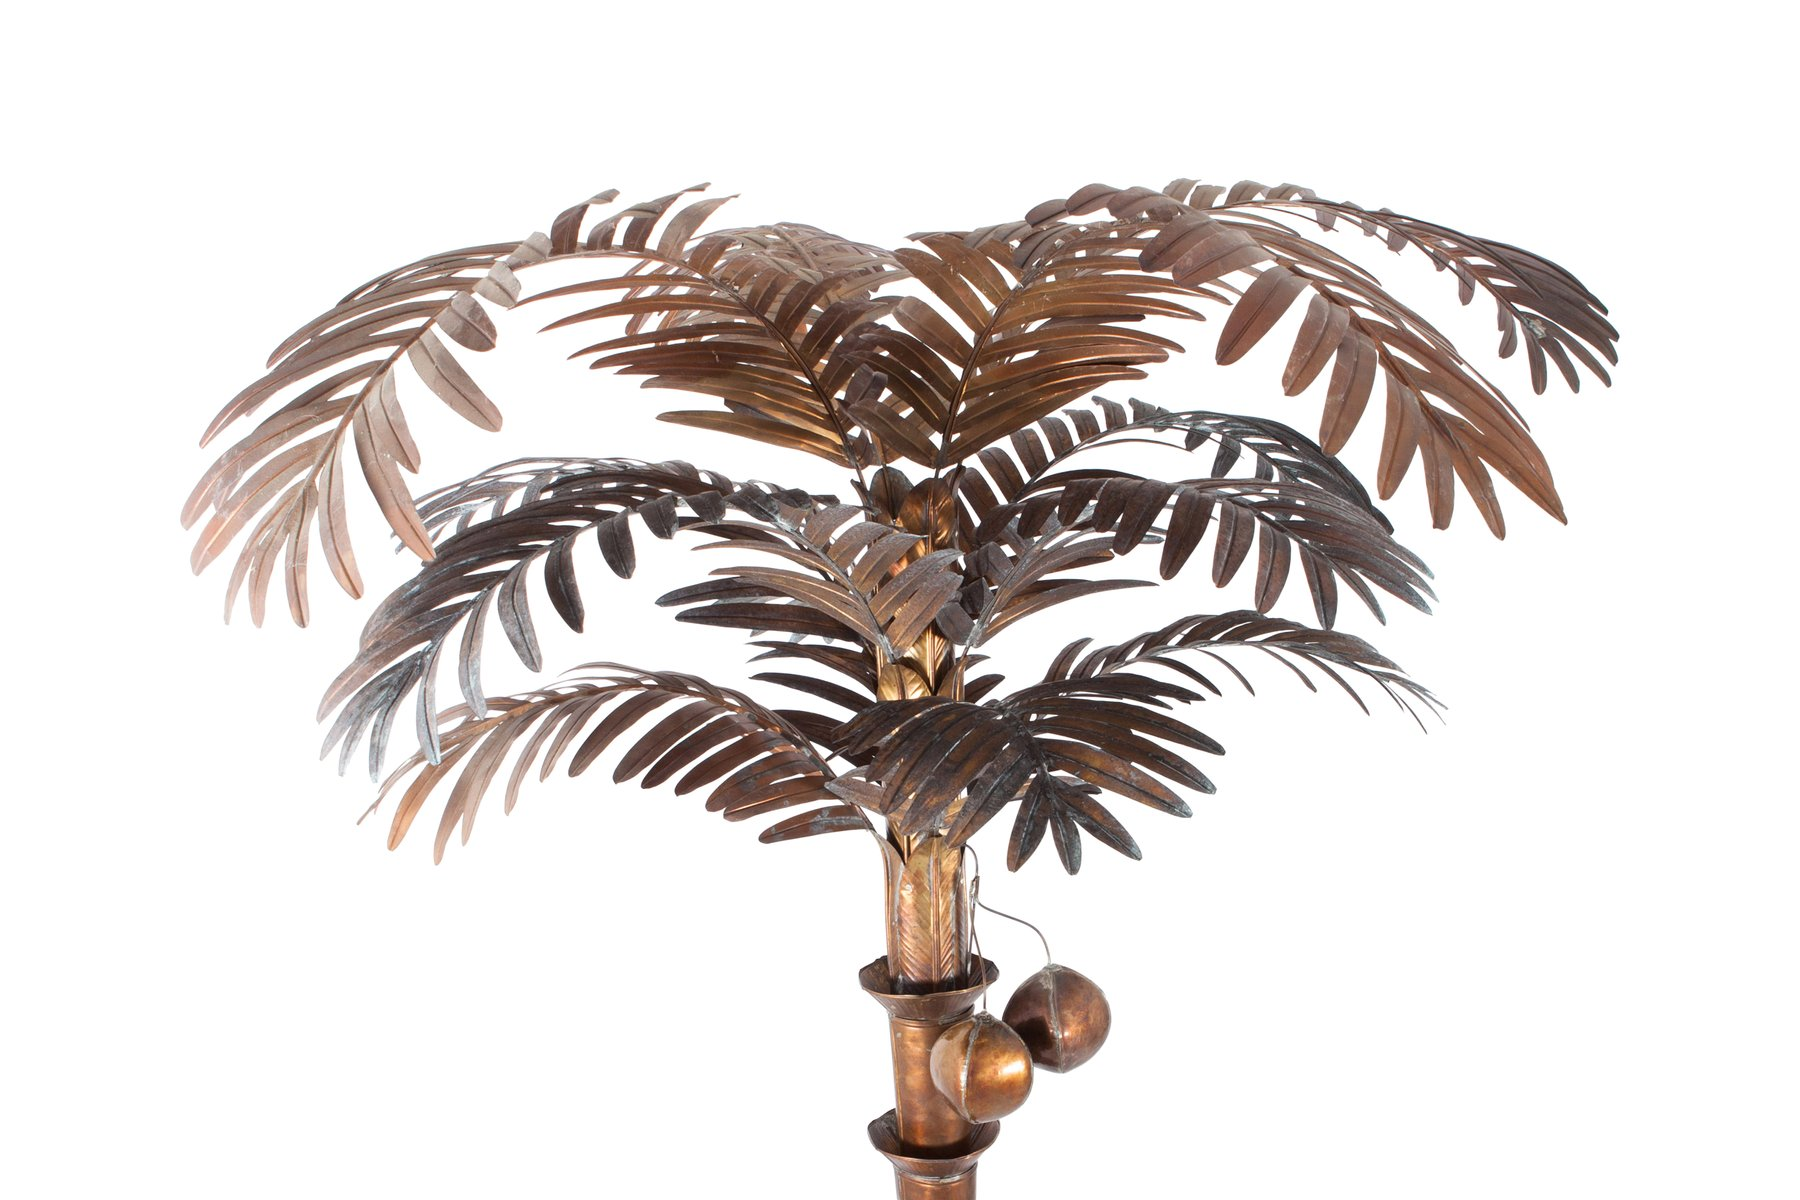 Vintage brass palm tree floor lamp for sale at pamono vintage brass palm tree floor lamp 5 375000 aloadofball Image collections